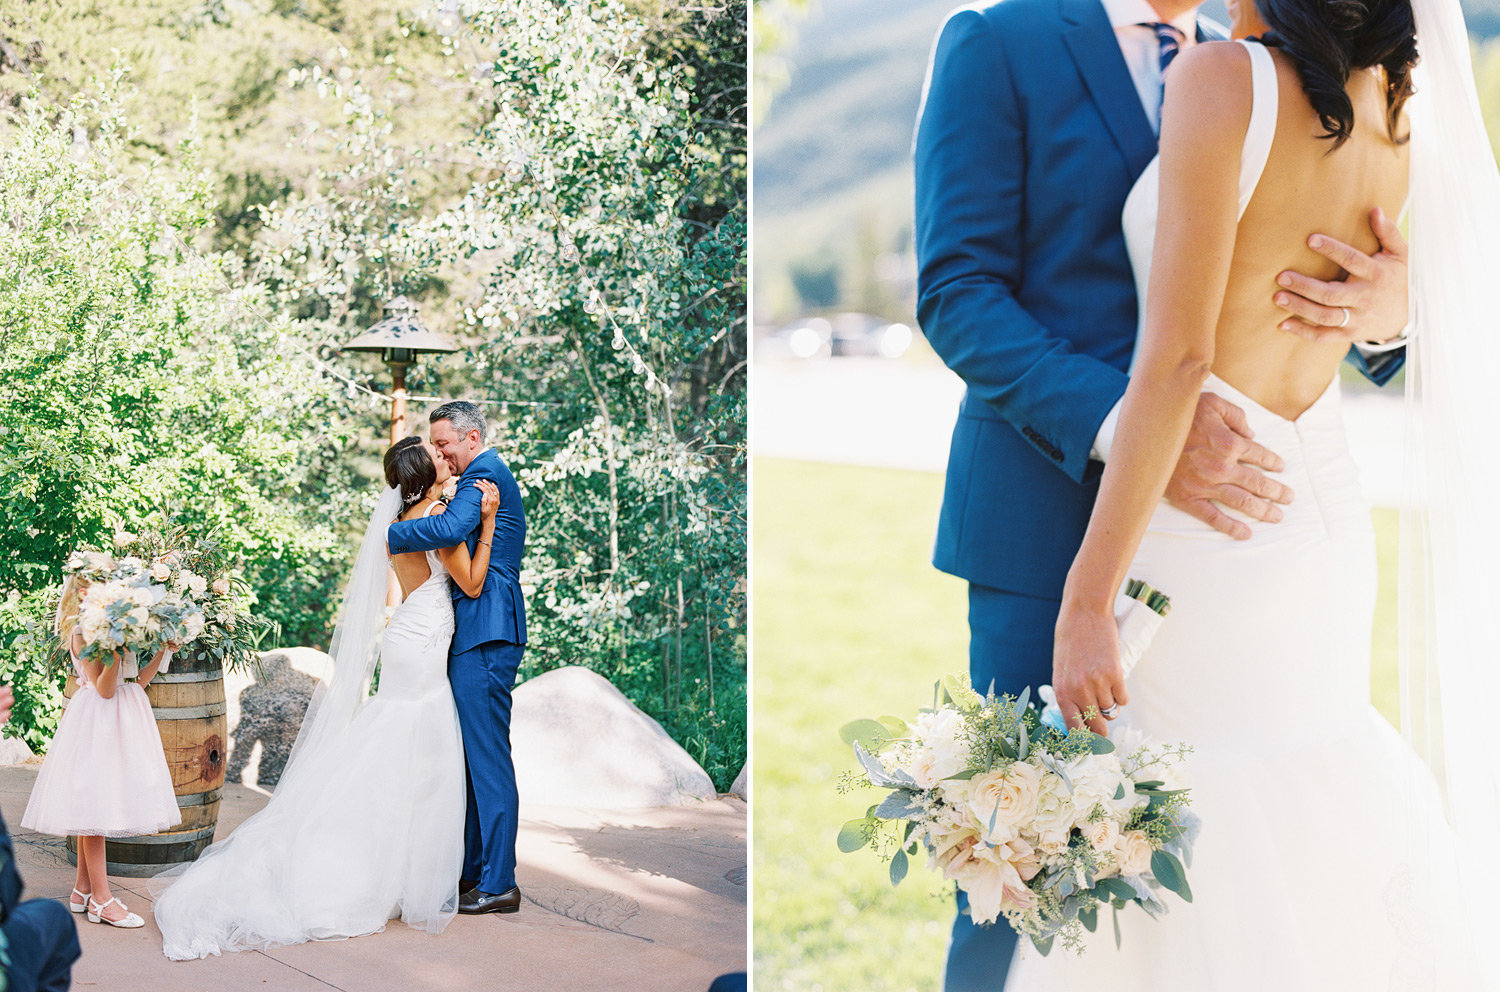 Vail-Wedding-Photographer-Four-Seasons-Vail-35